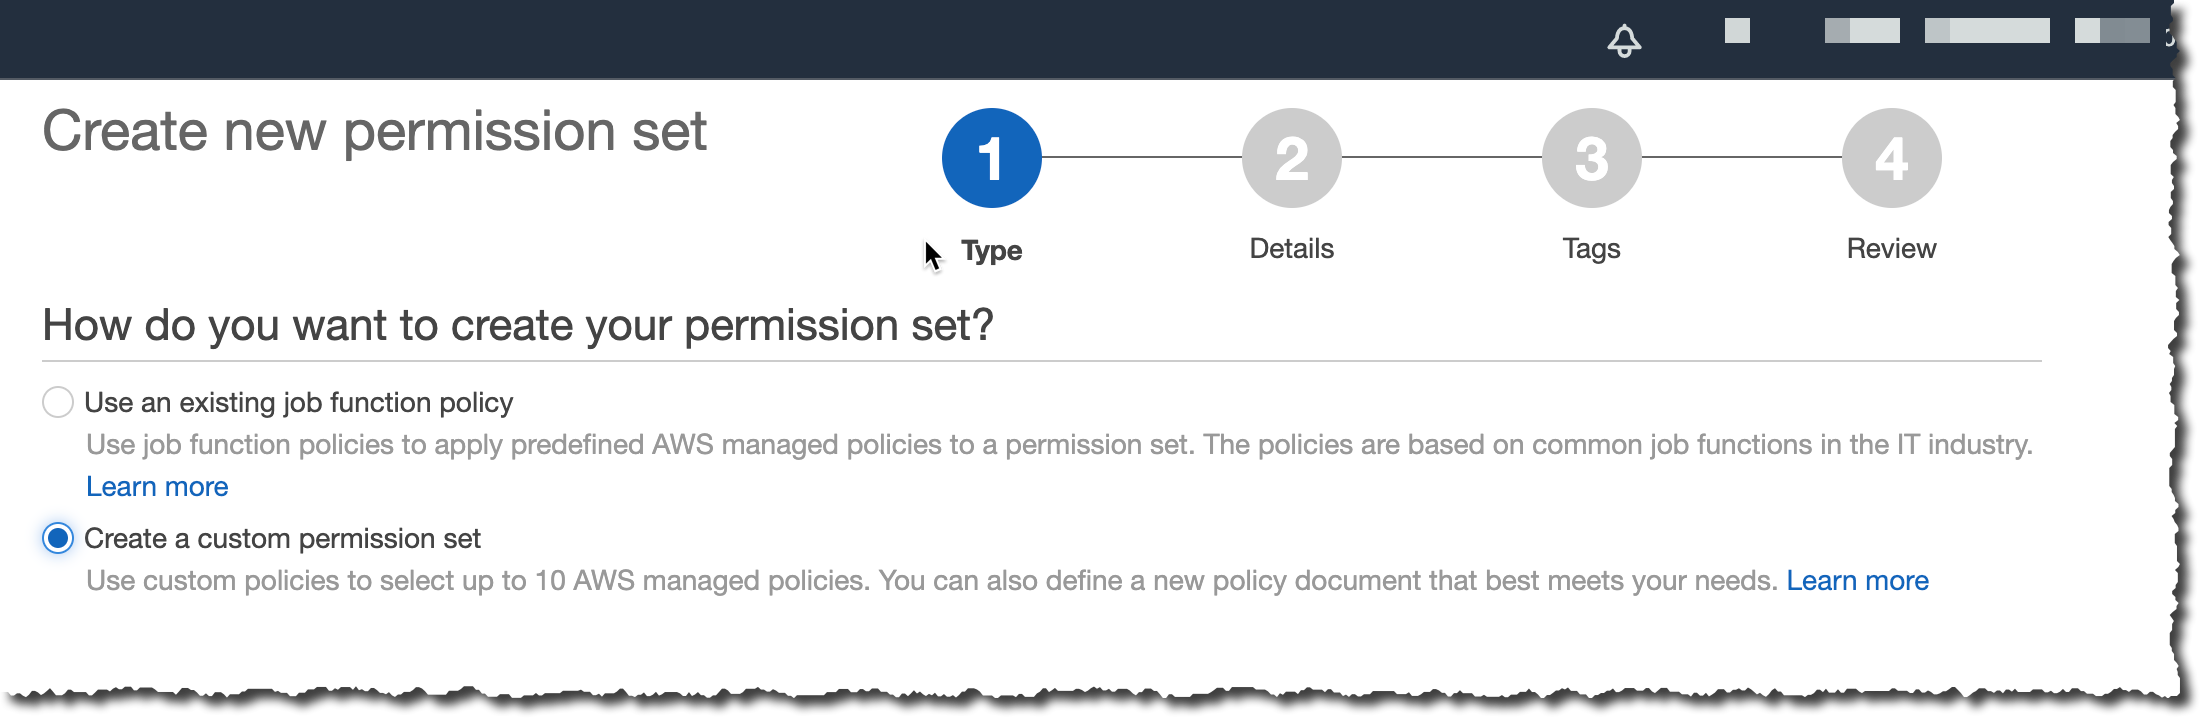 Create a custom permission set